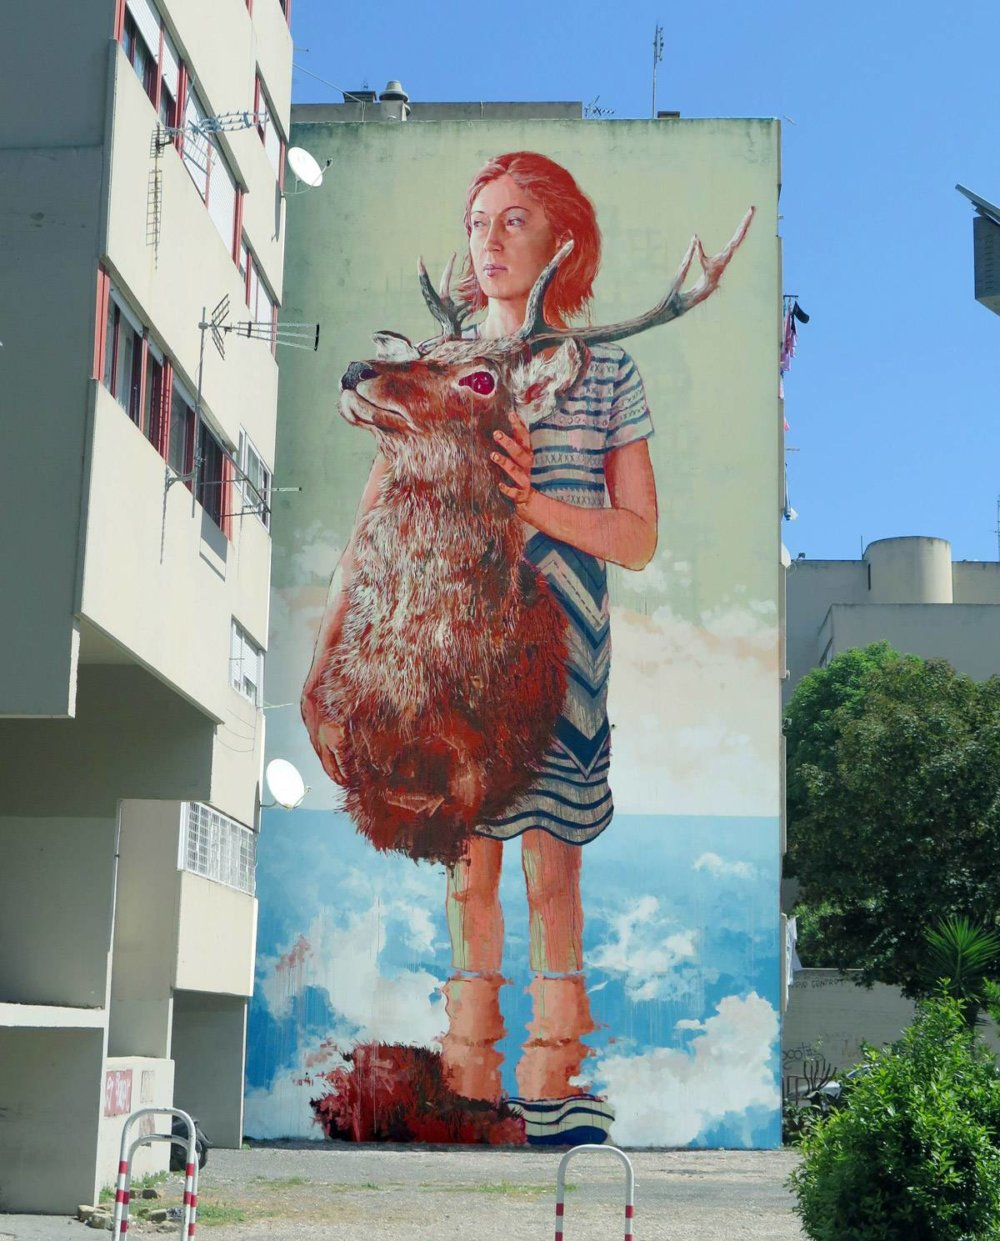 Magnificent Giant Photo Realistic Murals That Portray Political And Social Issues By Fintan Magee 9